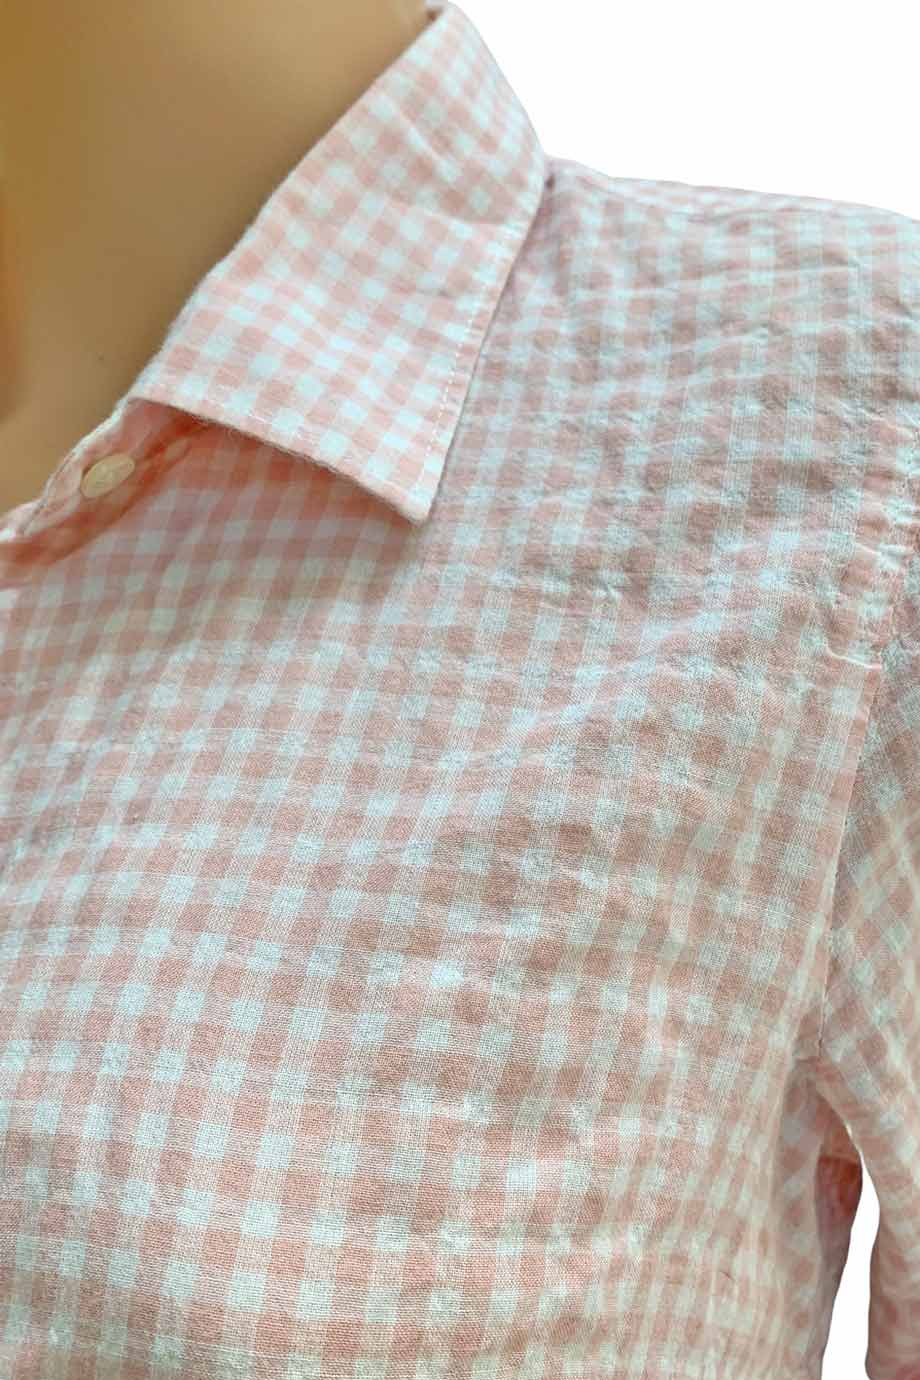 J Crew Pink Cotton Gingham Long Sleeve Button Up Perfect Shirt / Sz 6